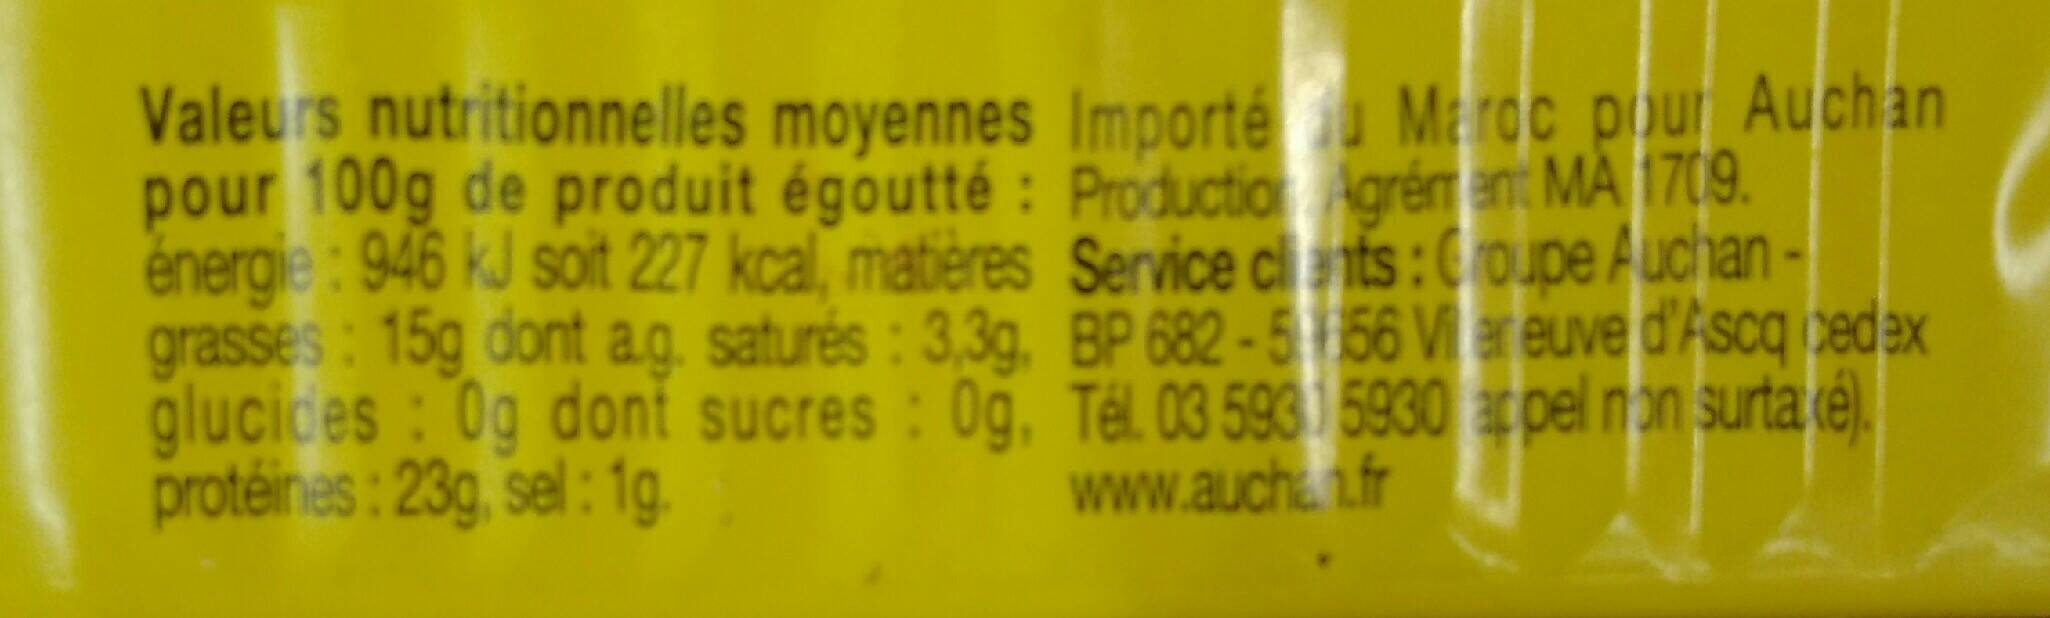 Sardines à l'huile de tournesol - Nutrition facts - fr